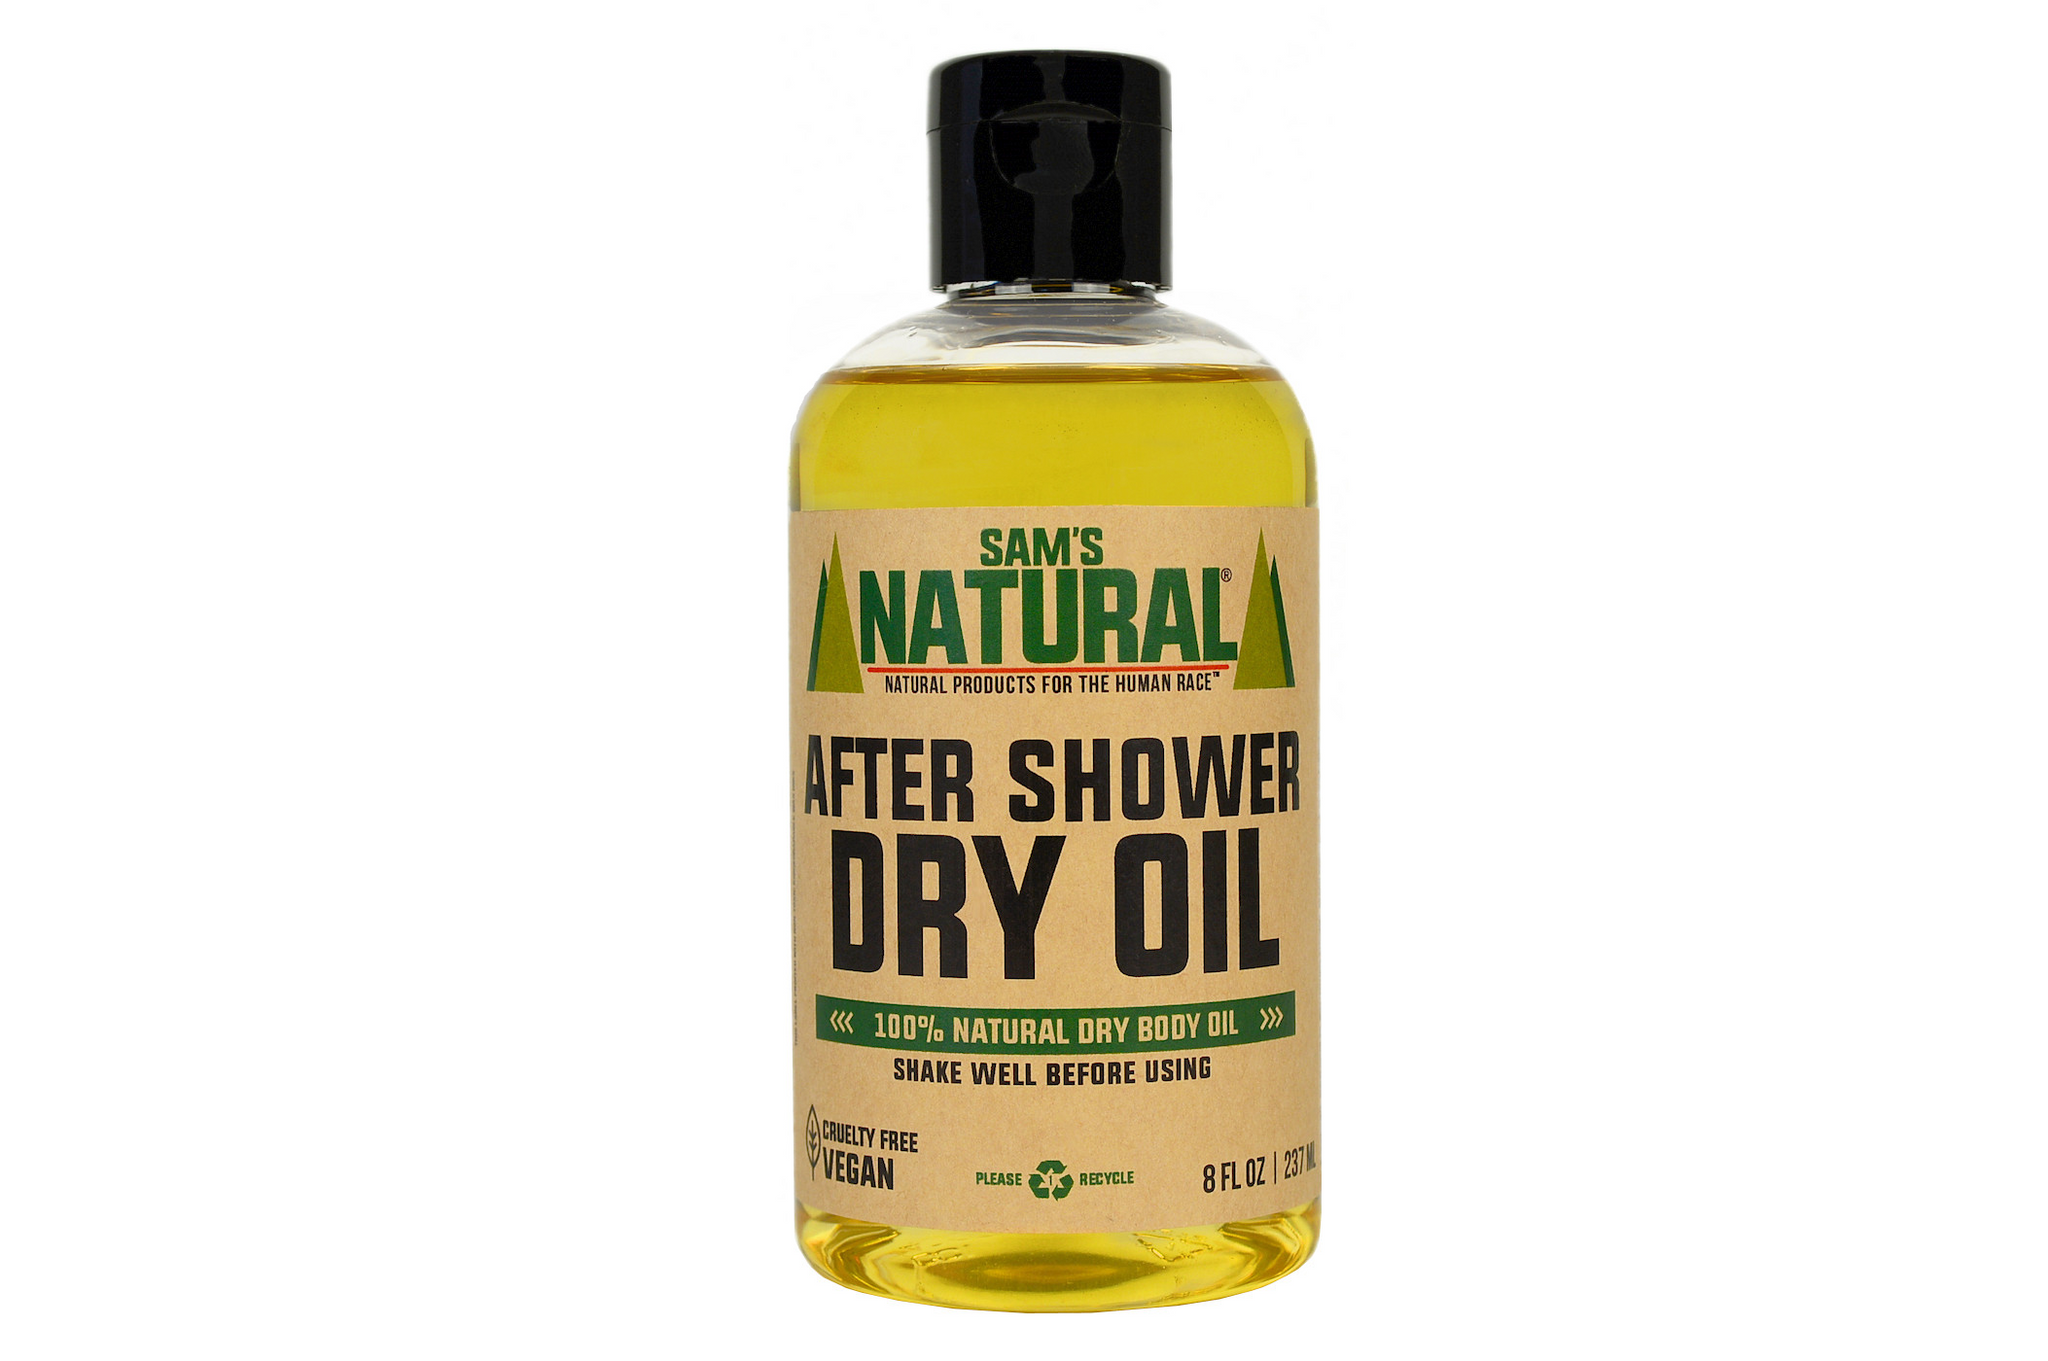 After Shower Dry Oil